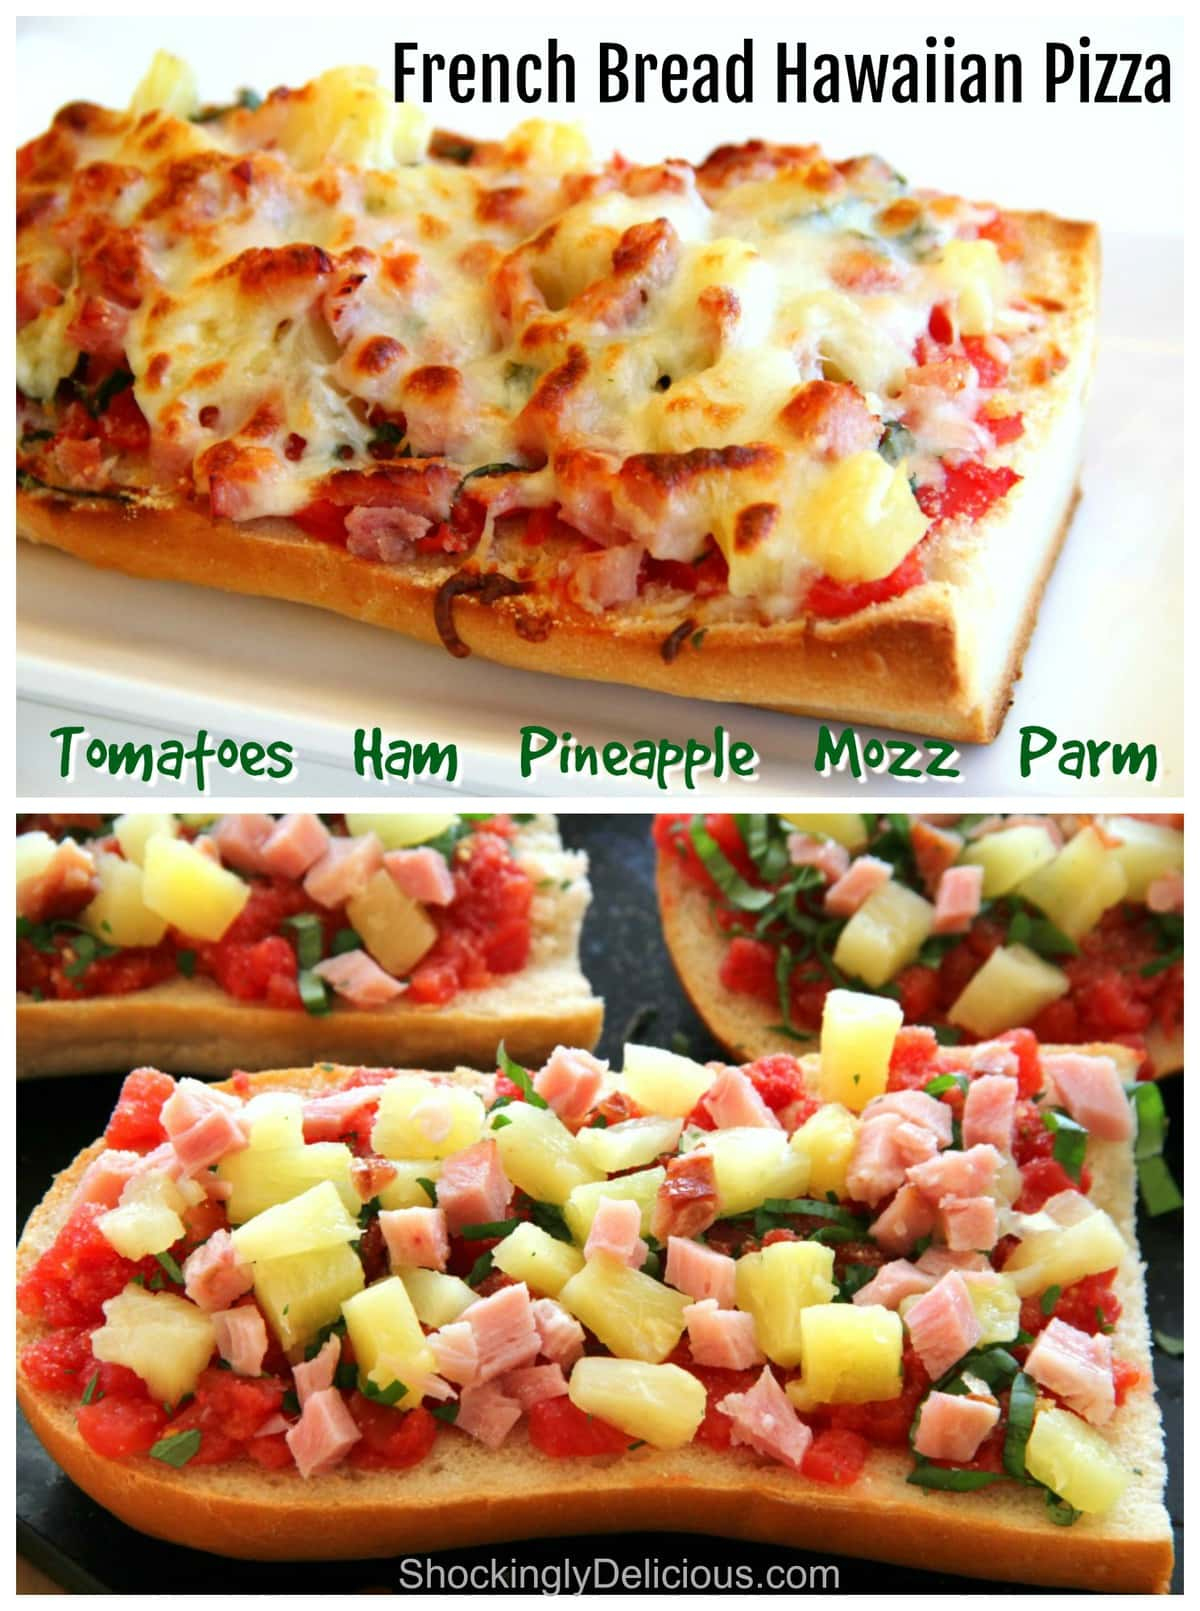 2 photos of French Bread Hawaiian Pizza, one being assembled, one baked